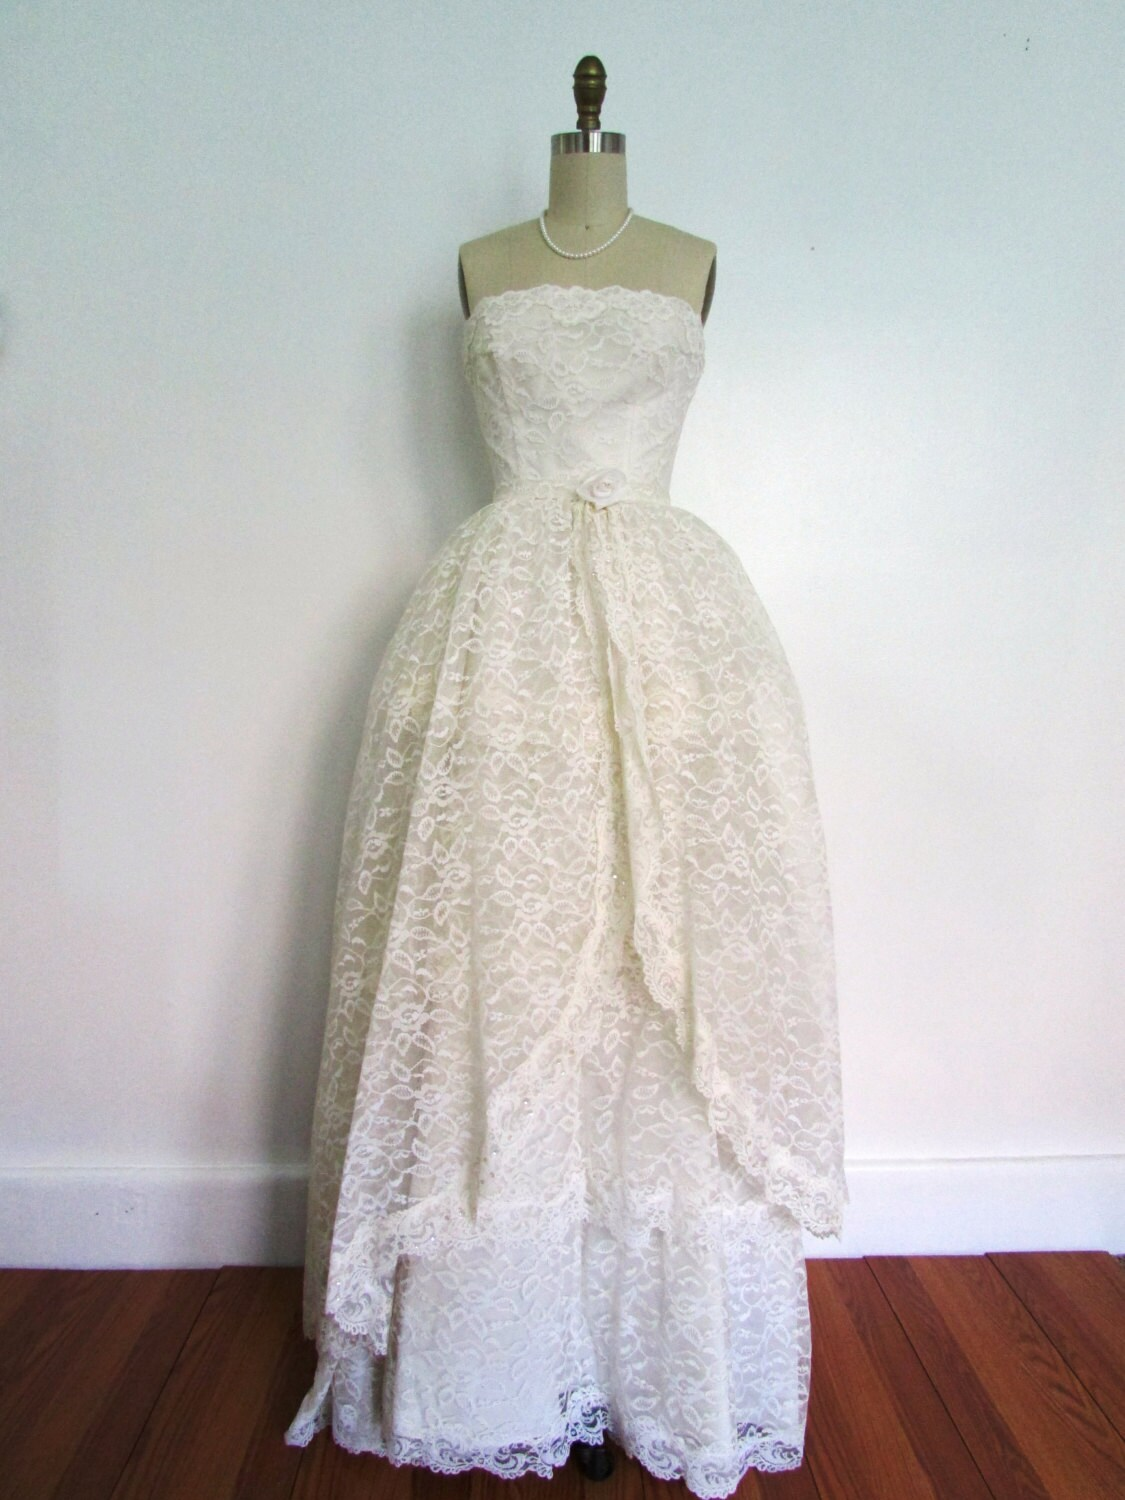 1950s Lace Lace Fashion Article Popularity Of 1950s Lace: 1950s Lace And Satin Wedding Gown Vintage 50s Four Tier